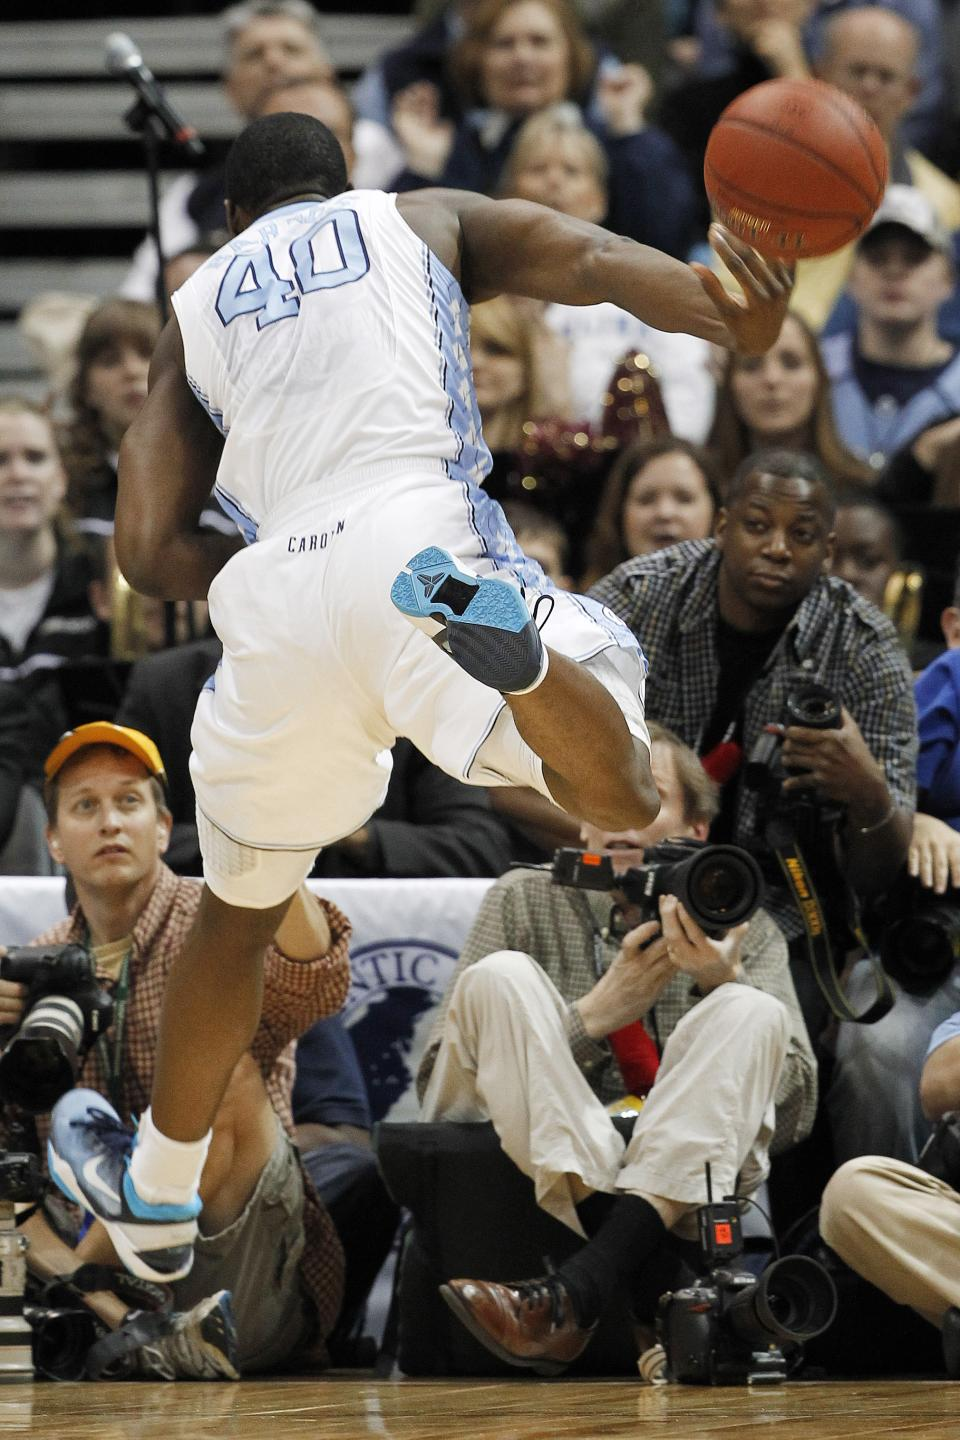 North Carolina forward Harrison Barnes (40) heads out of bounds while keeping the ball in play during the first half against Florida State in an NCAA college basketball game in the final of the Atlantic Coast Conference men's tournament, Sunday, March 11, 2012, in Atlanta. (AP Photo/John Bazemore)